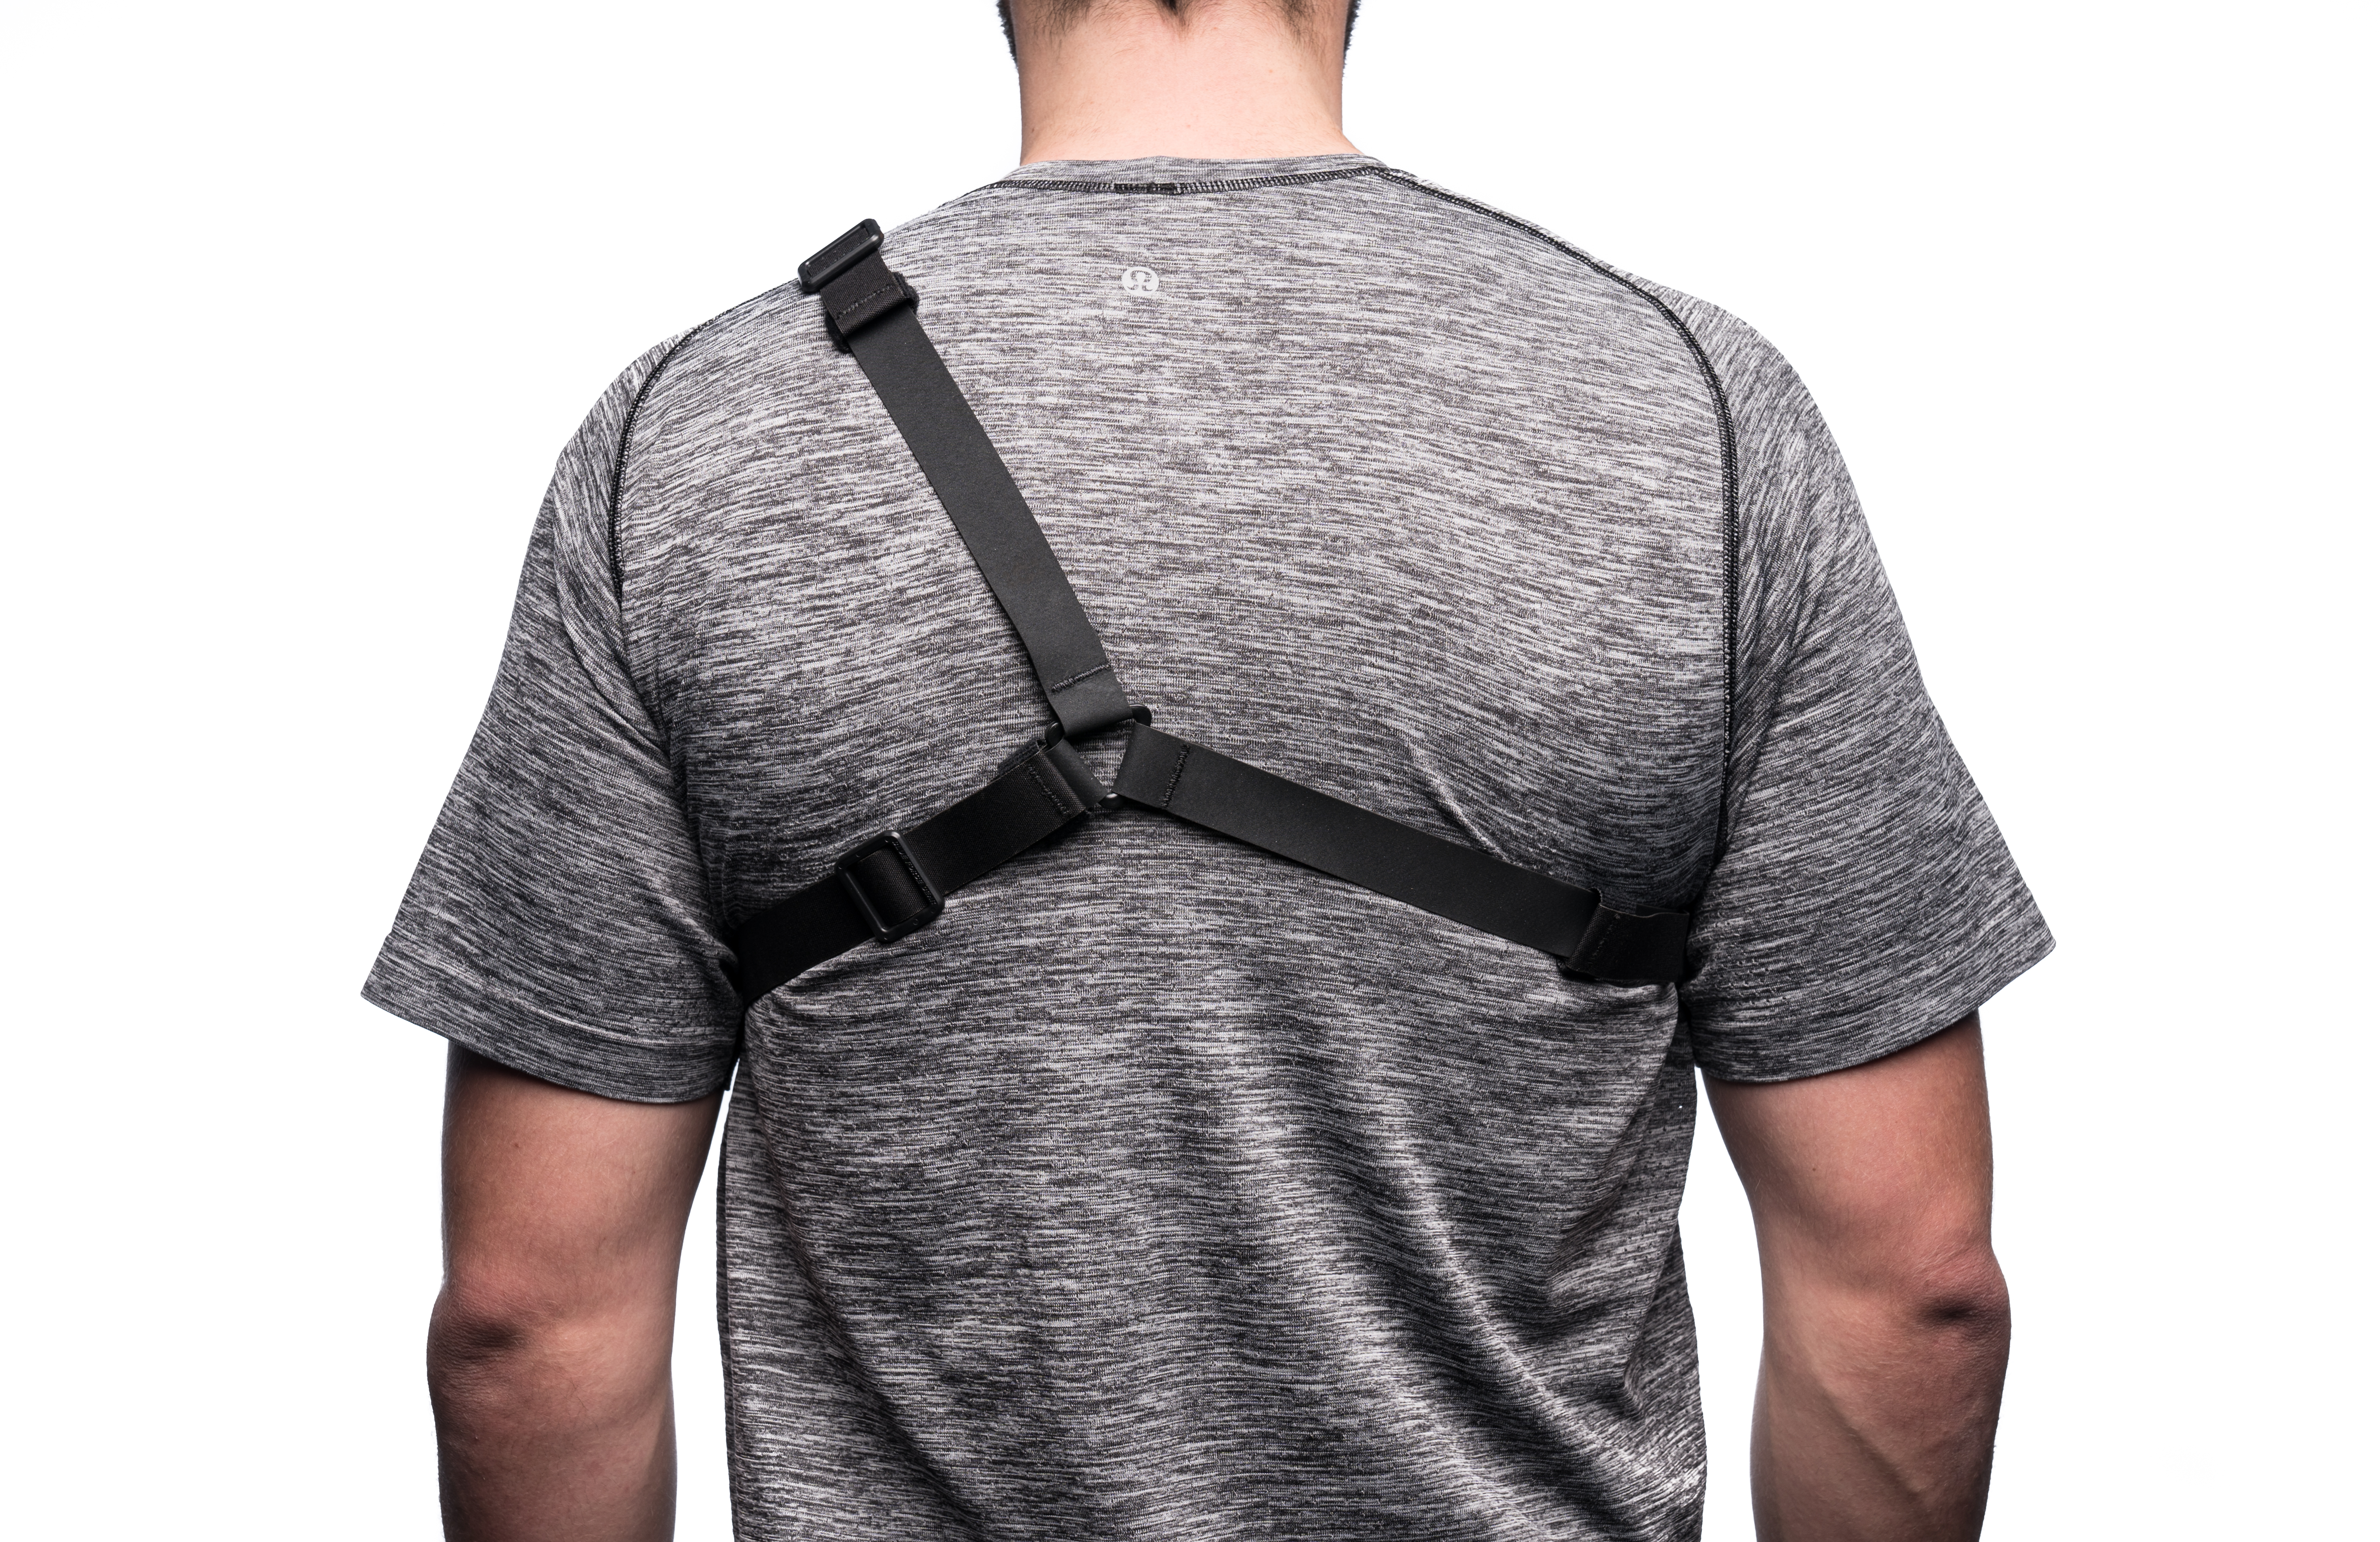 Outback Glock- Fully Adjustable Harness